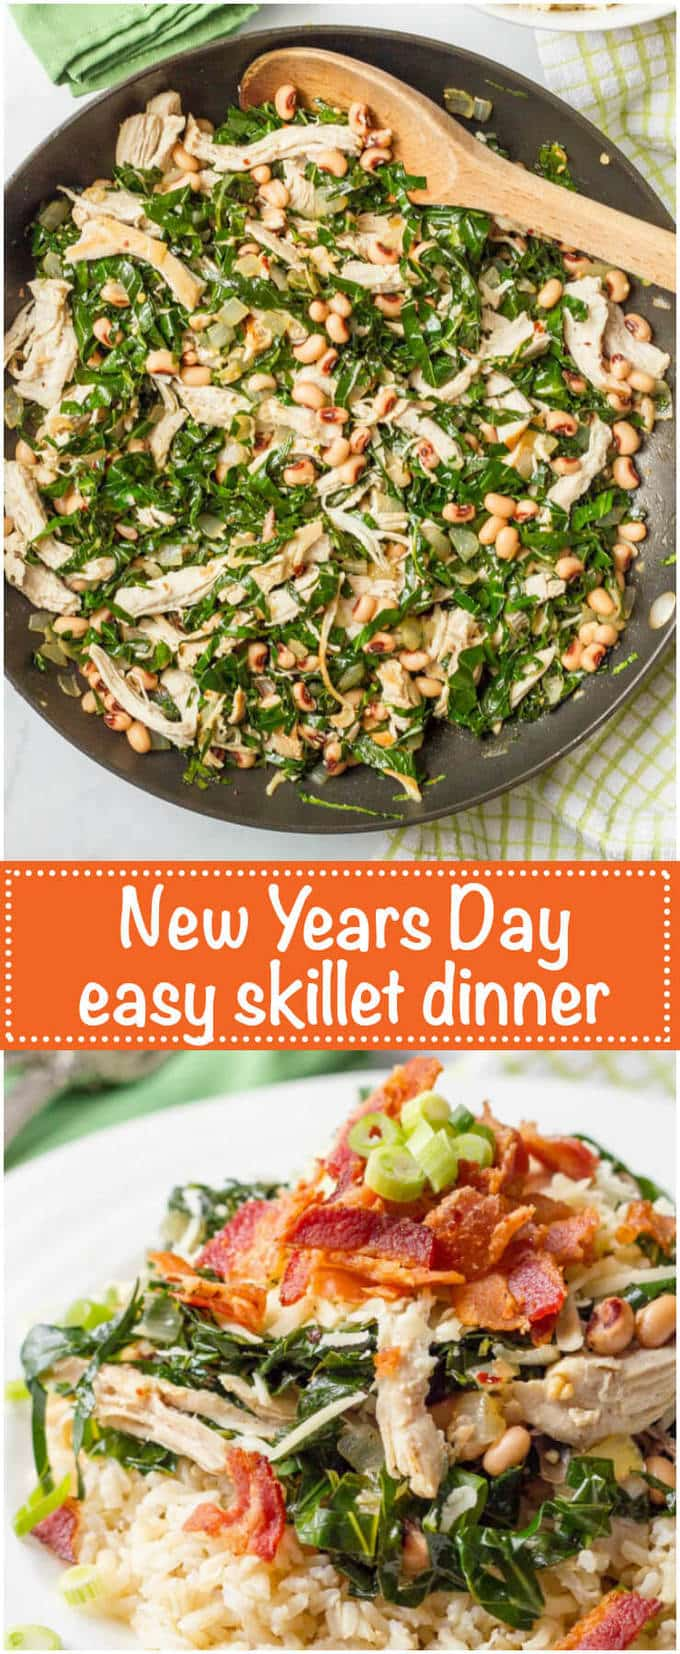 Southern New Year's Day dinner skillet incorporates many of the traditional good luck foods for a quick and easy one-pan meal with incredible flavor! | www.familyfoodonthetable.com